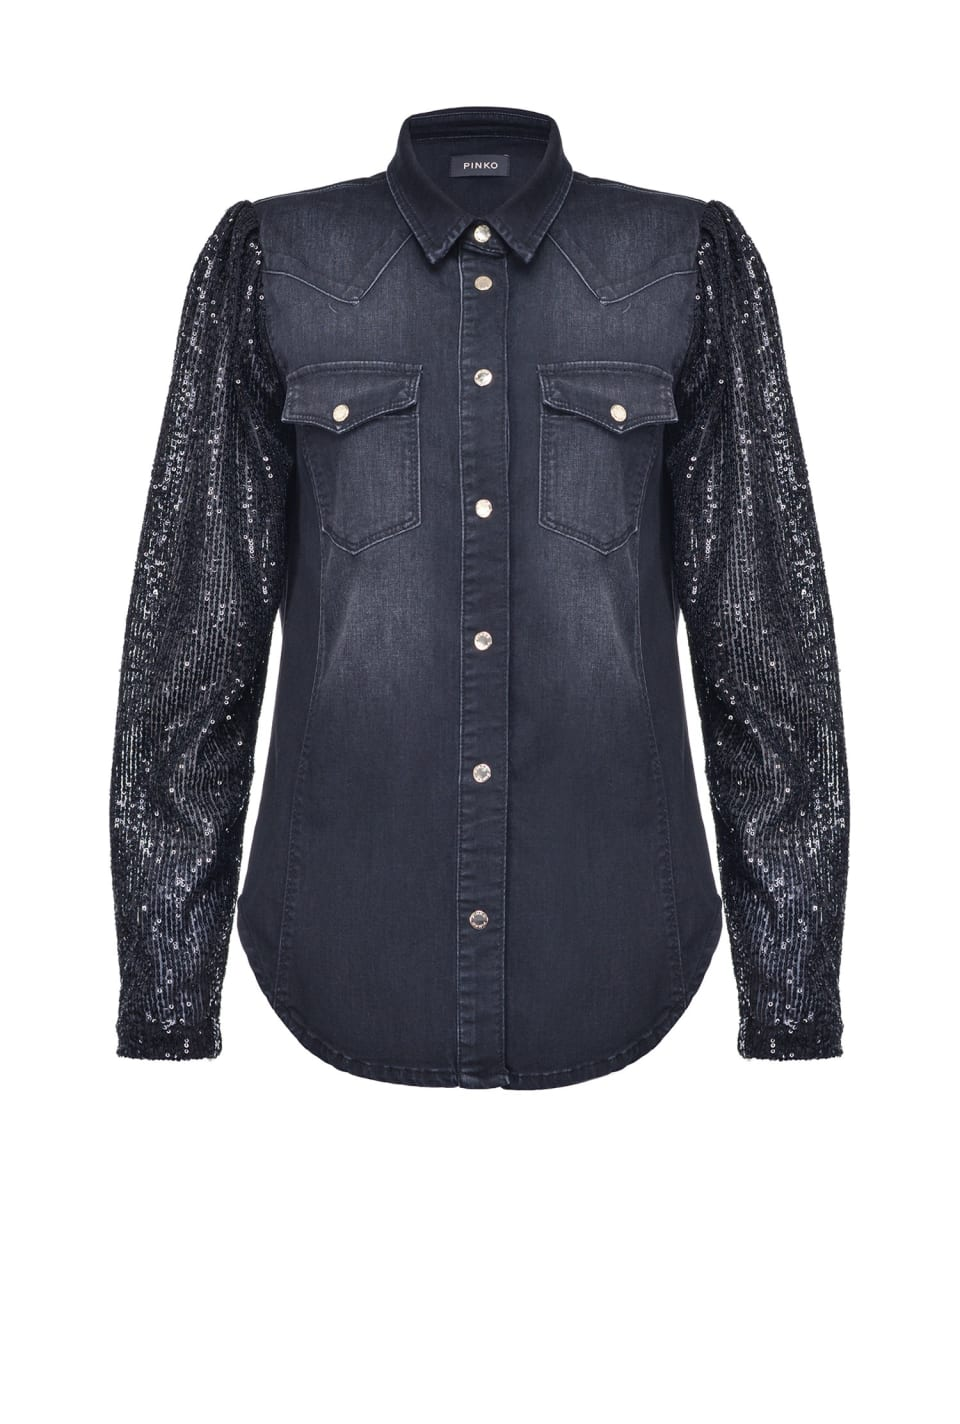 Denim shirt with sequin sleeves - Pinko